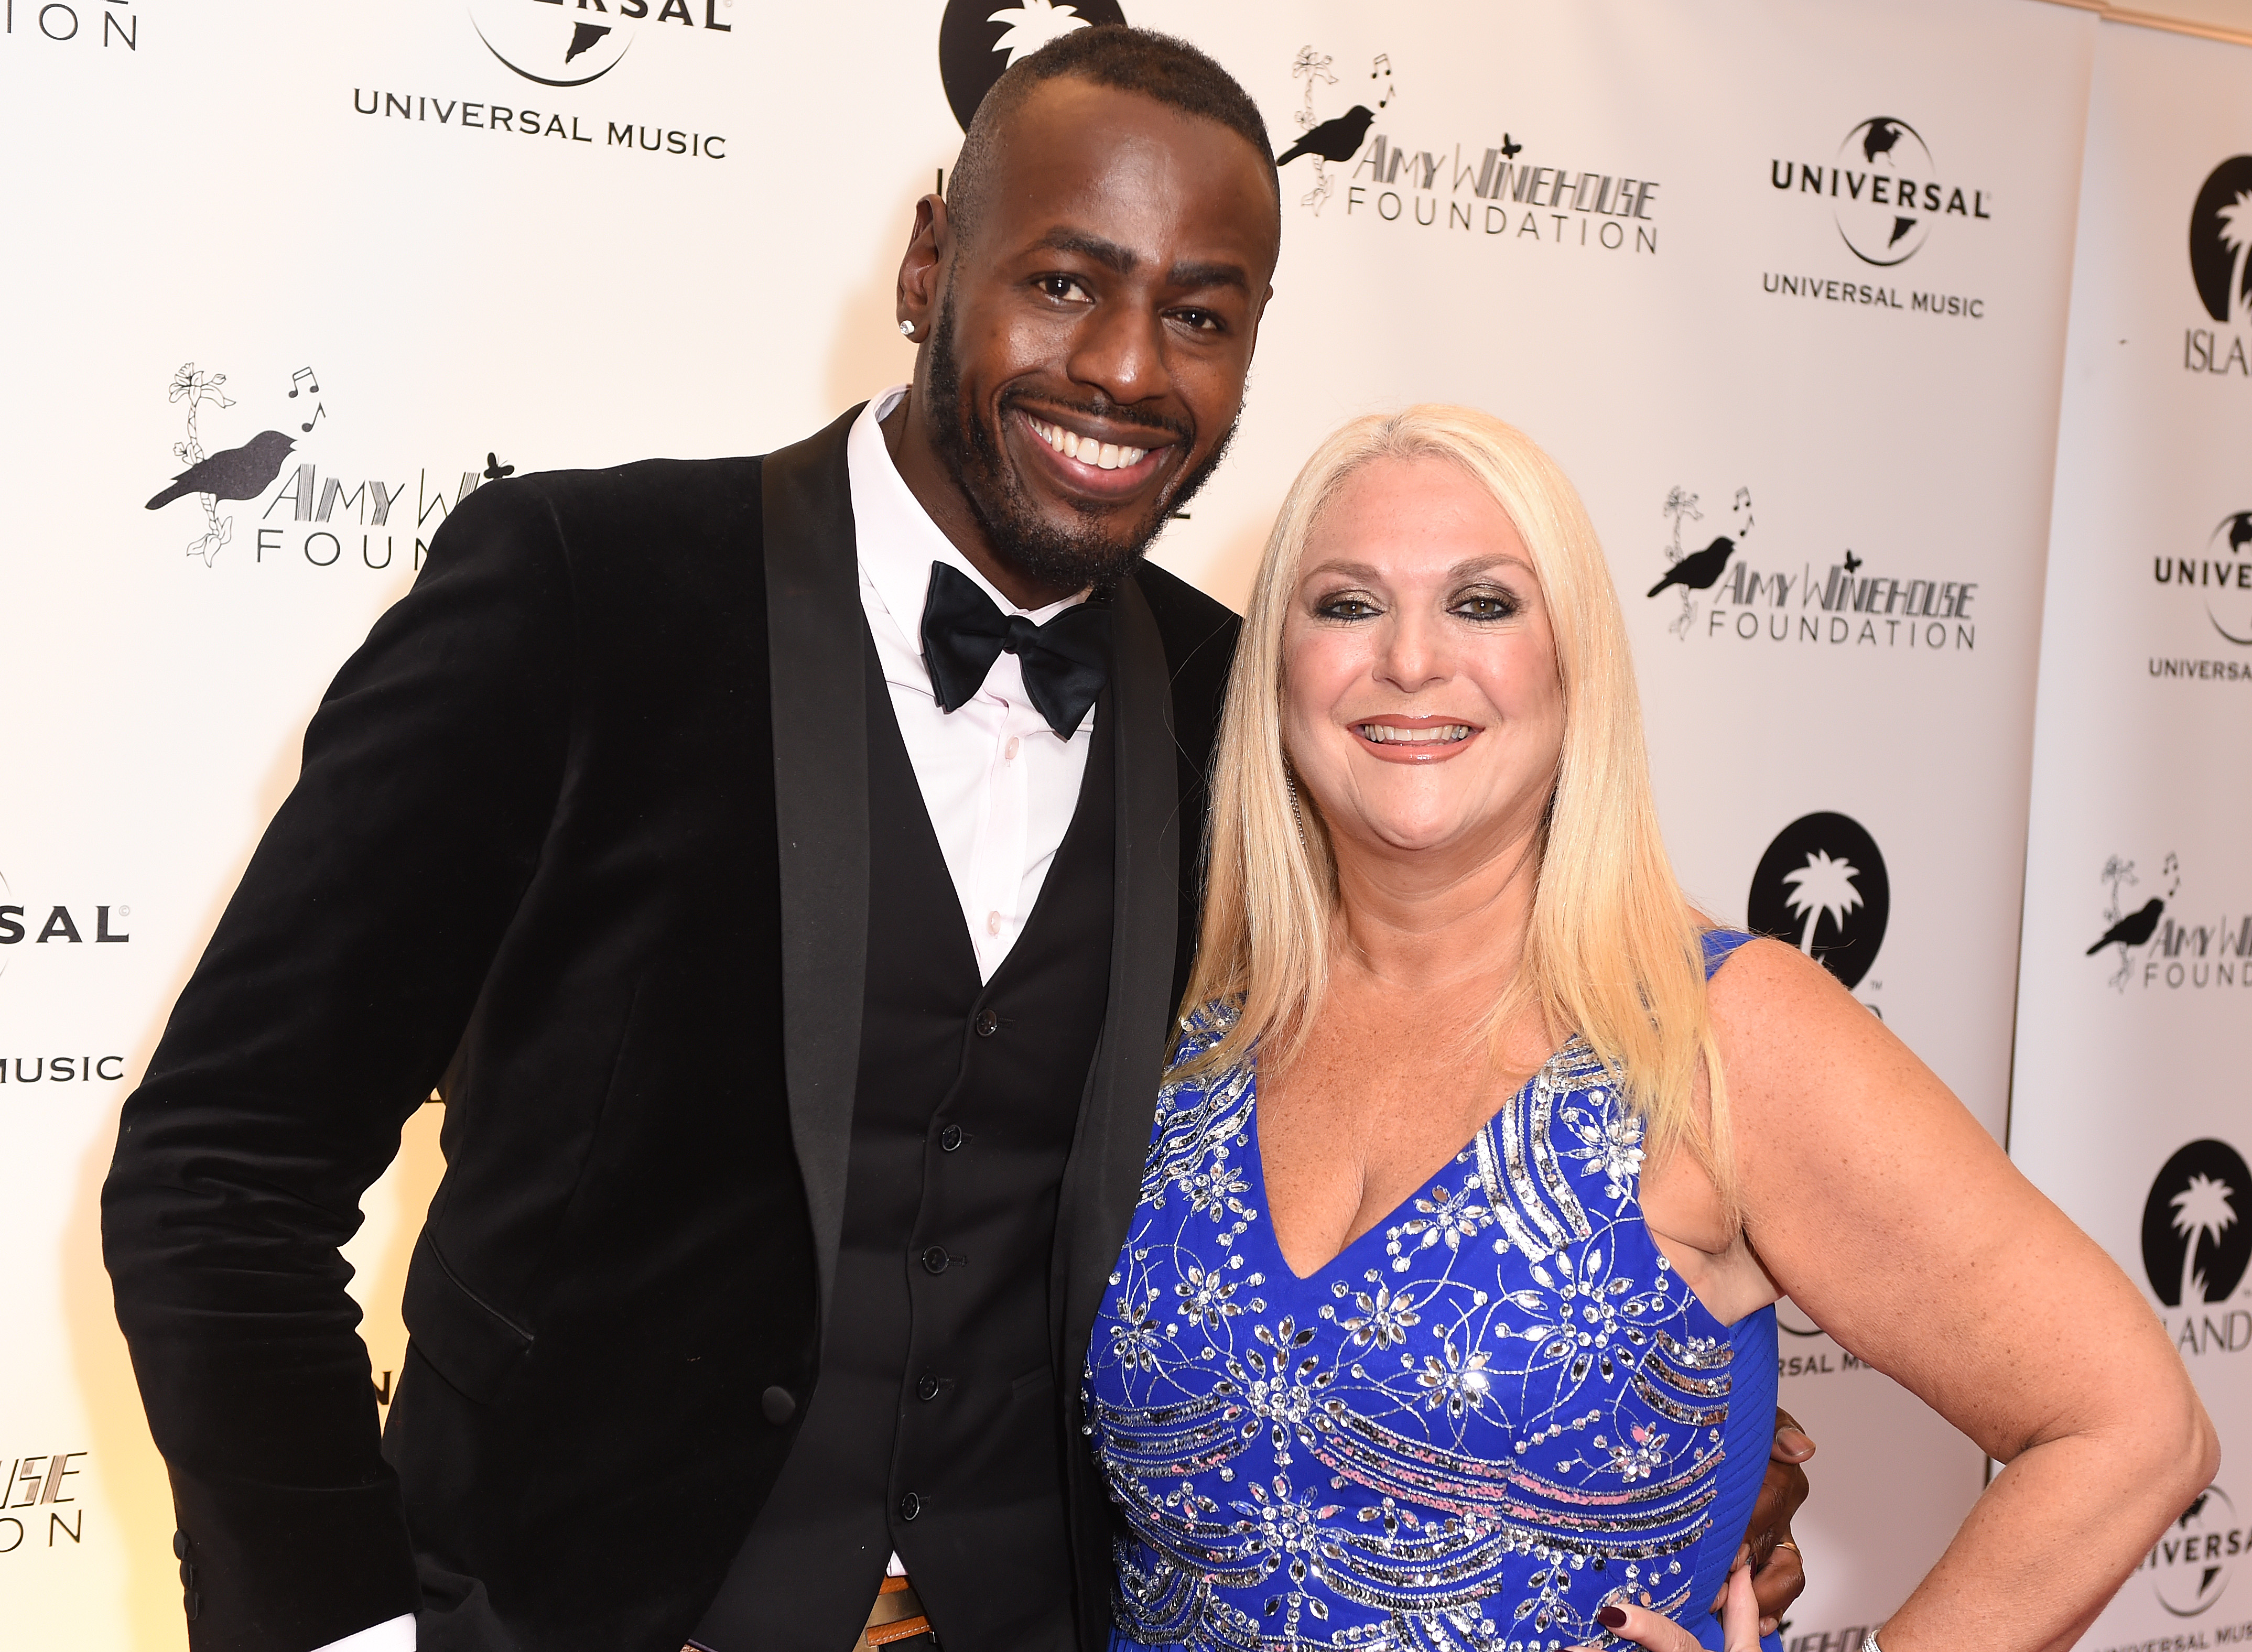 Vanessa Feltz's fiance Ben Ofoedu finds her three-stone weight loss 'sexy'